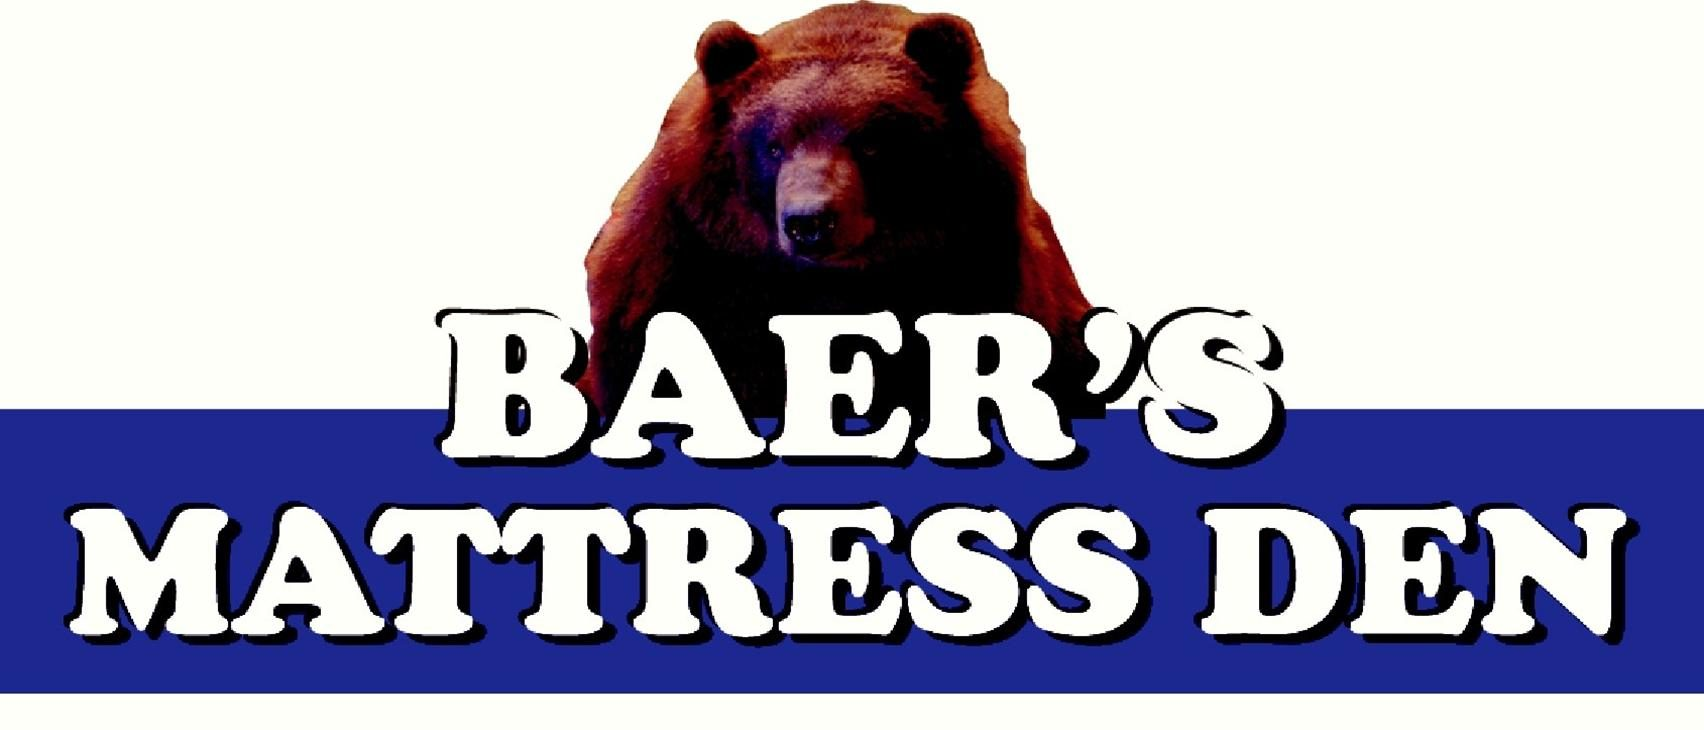 Baer's Mattress Den logo